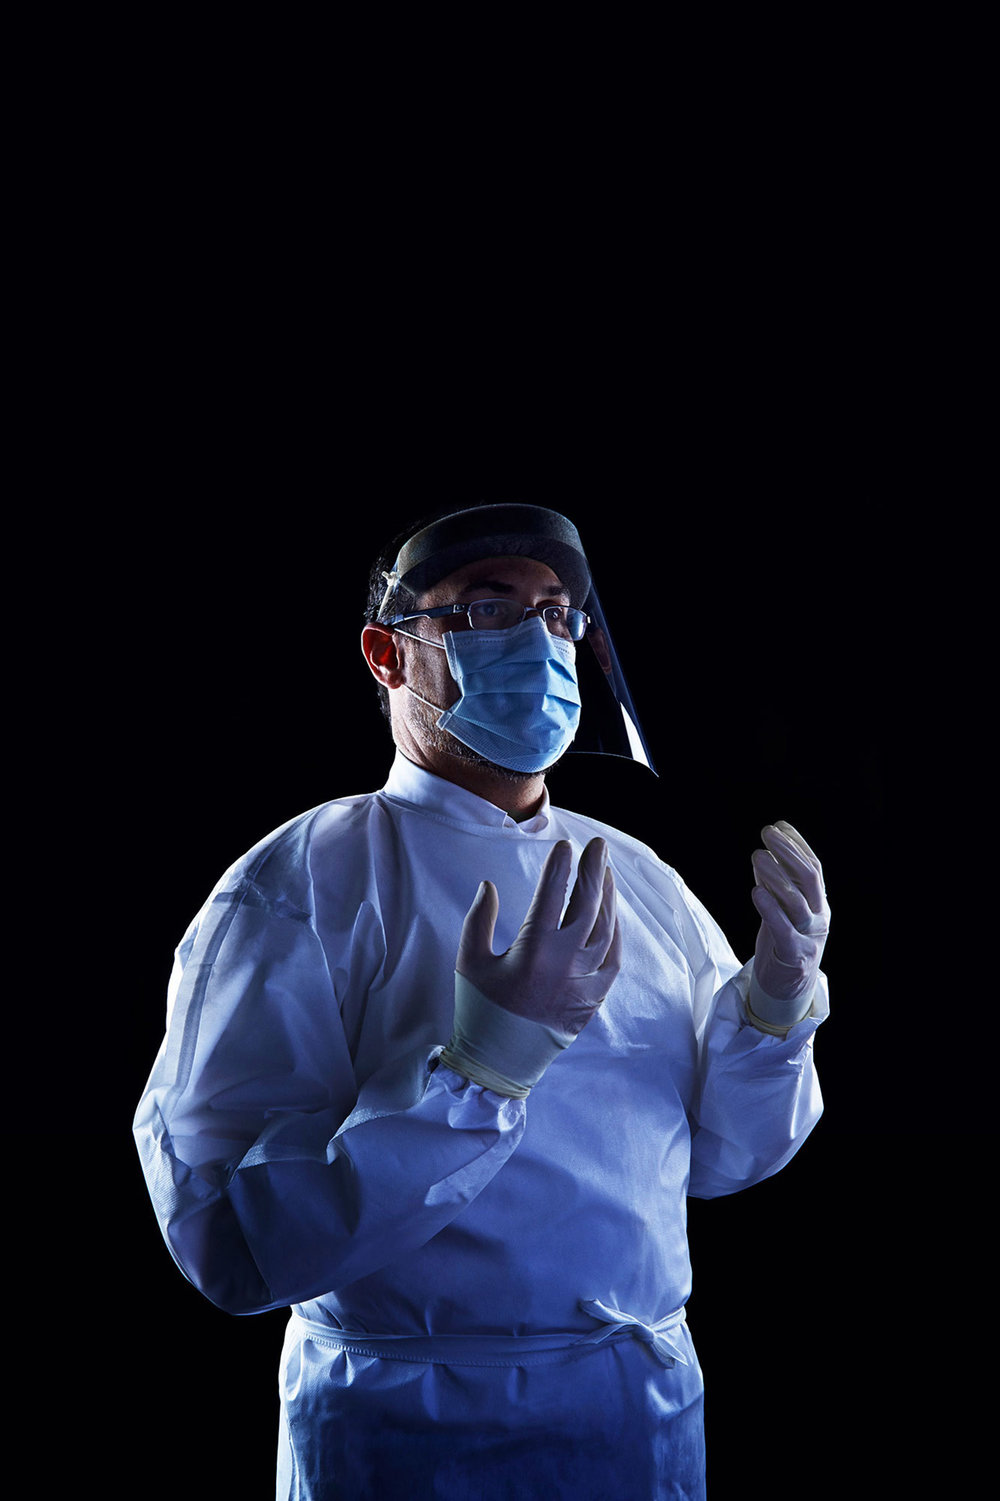 Personal Protective Equipment for Treating Patient with Ebola, 2014